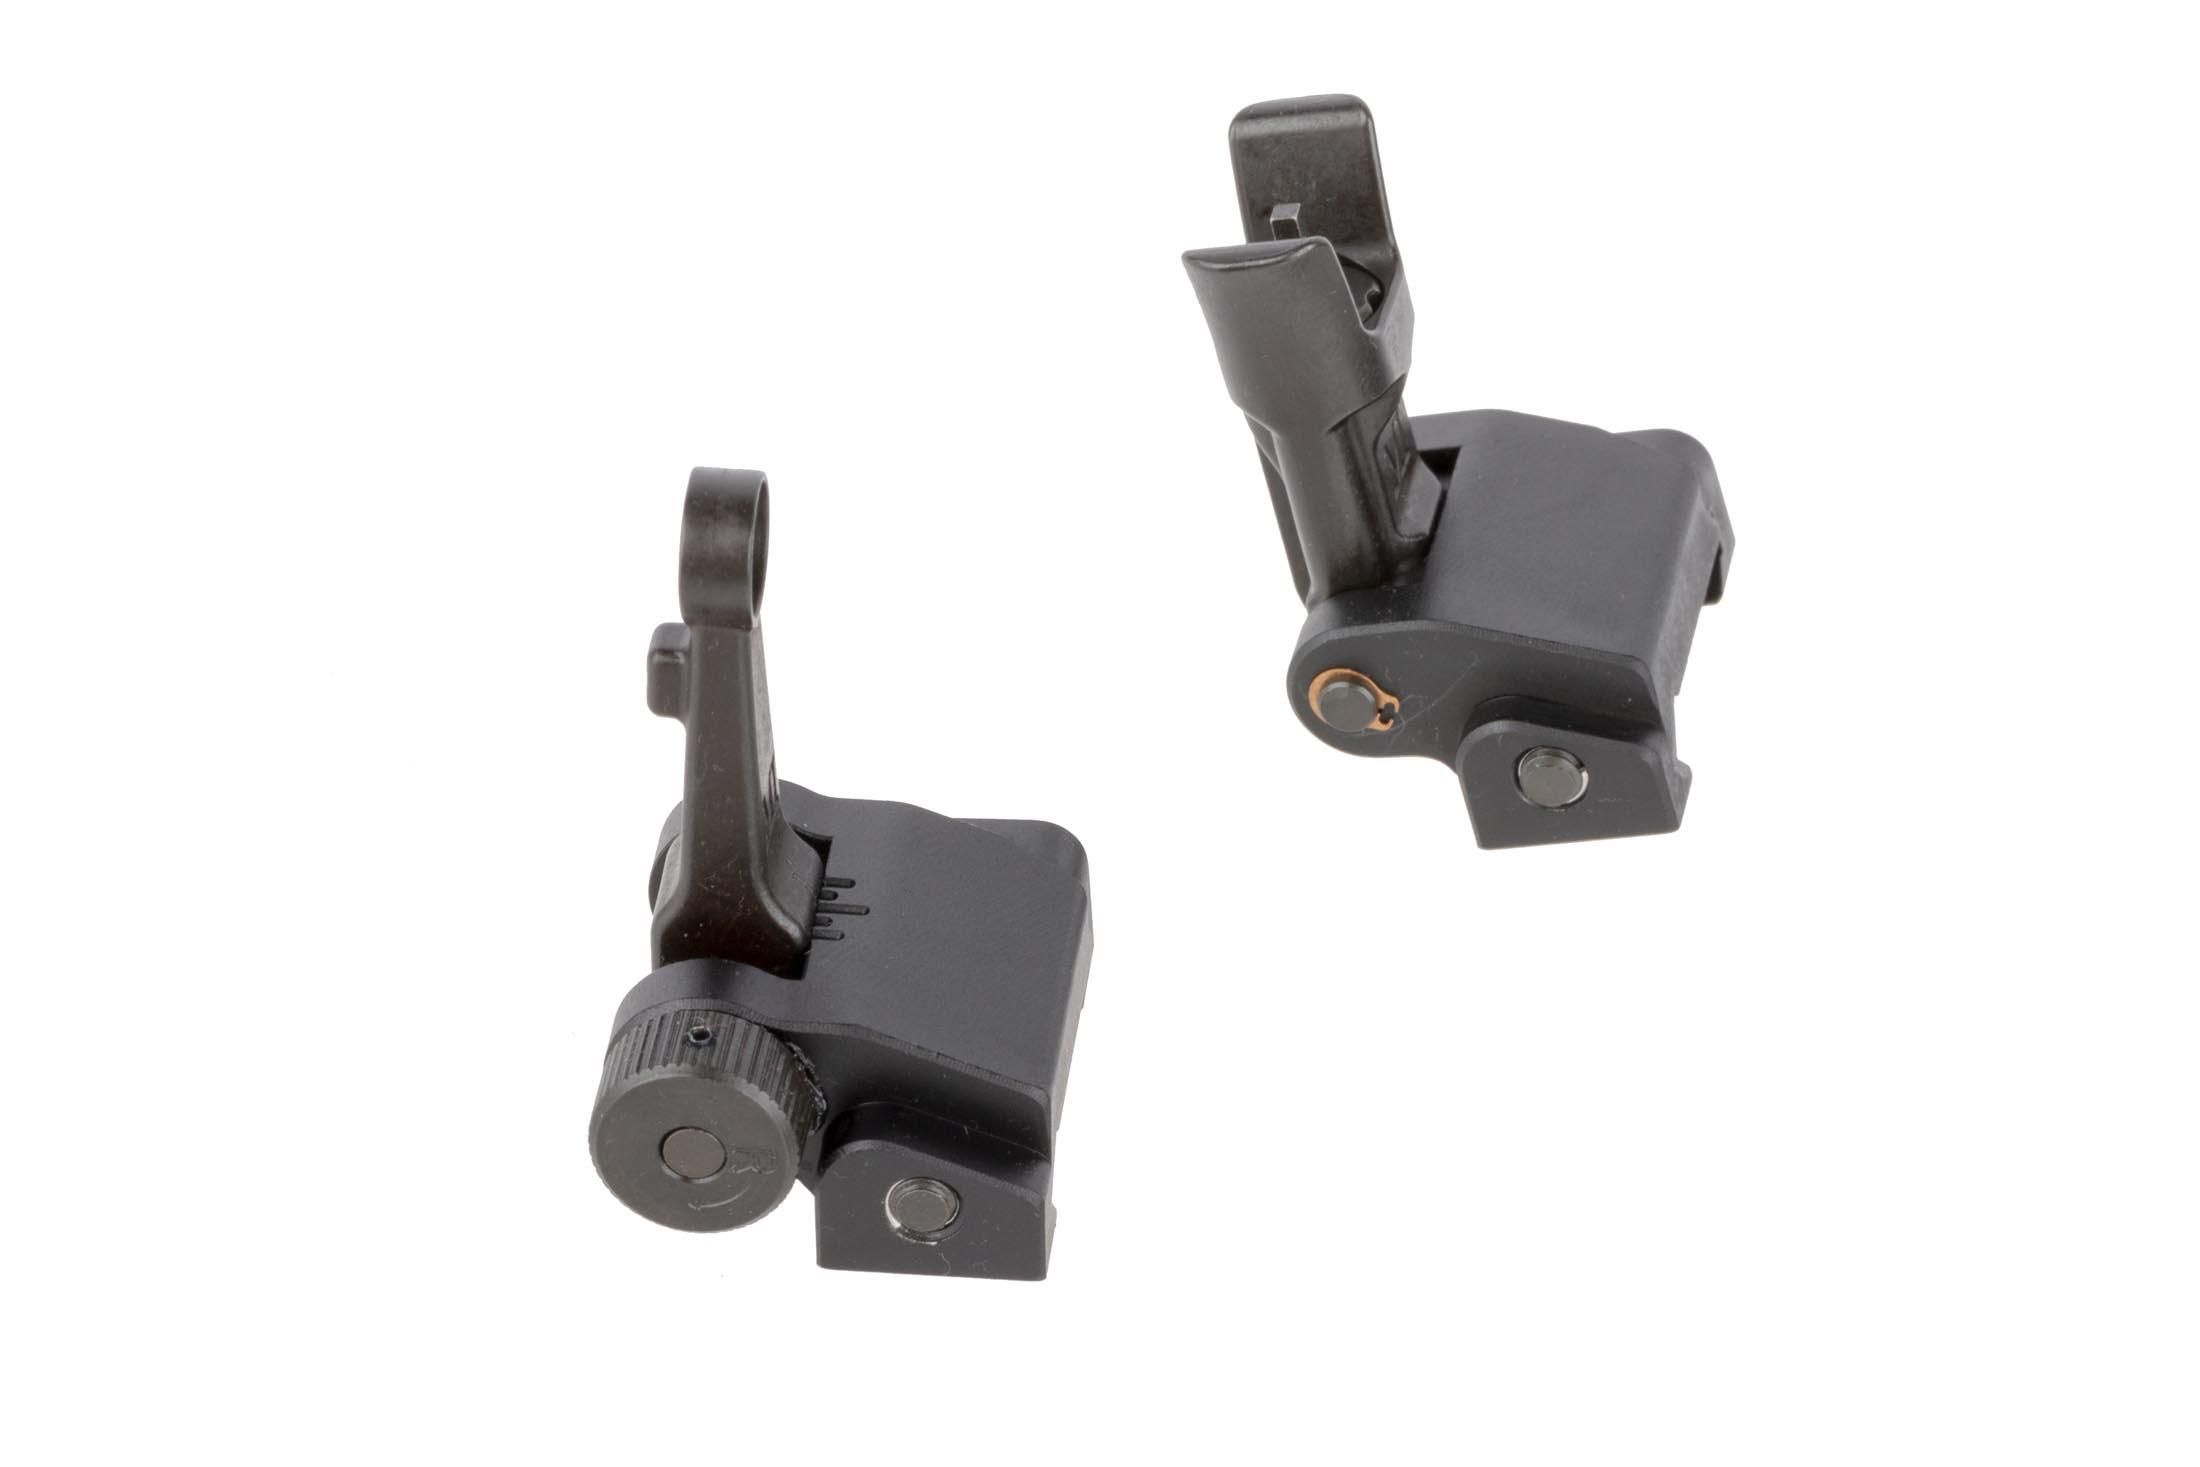 Midwest Industries Combat Rifle sight set folds flat for low-profile stowing that won't interfere with optics or accessories